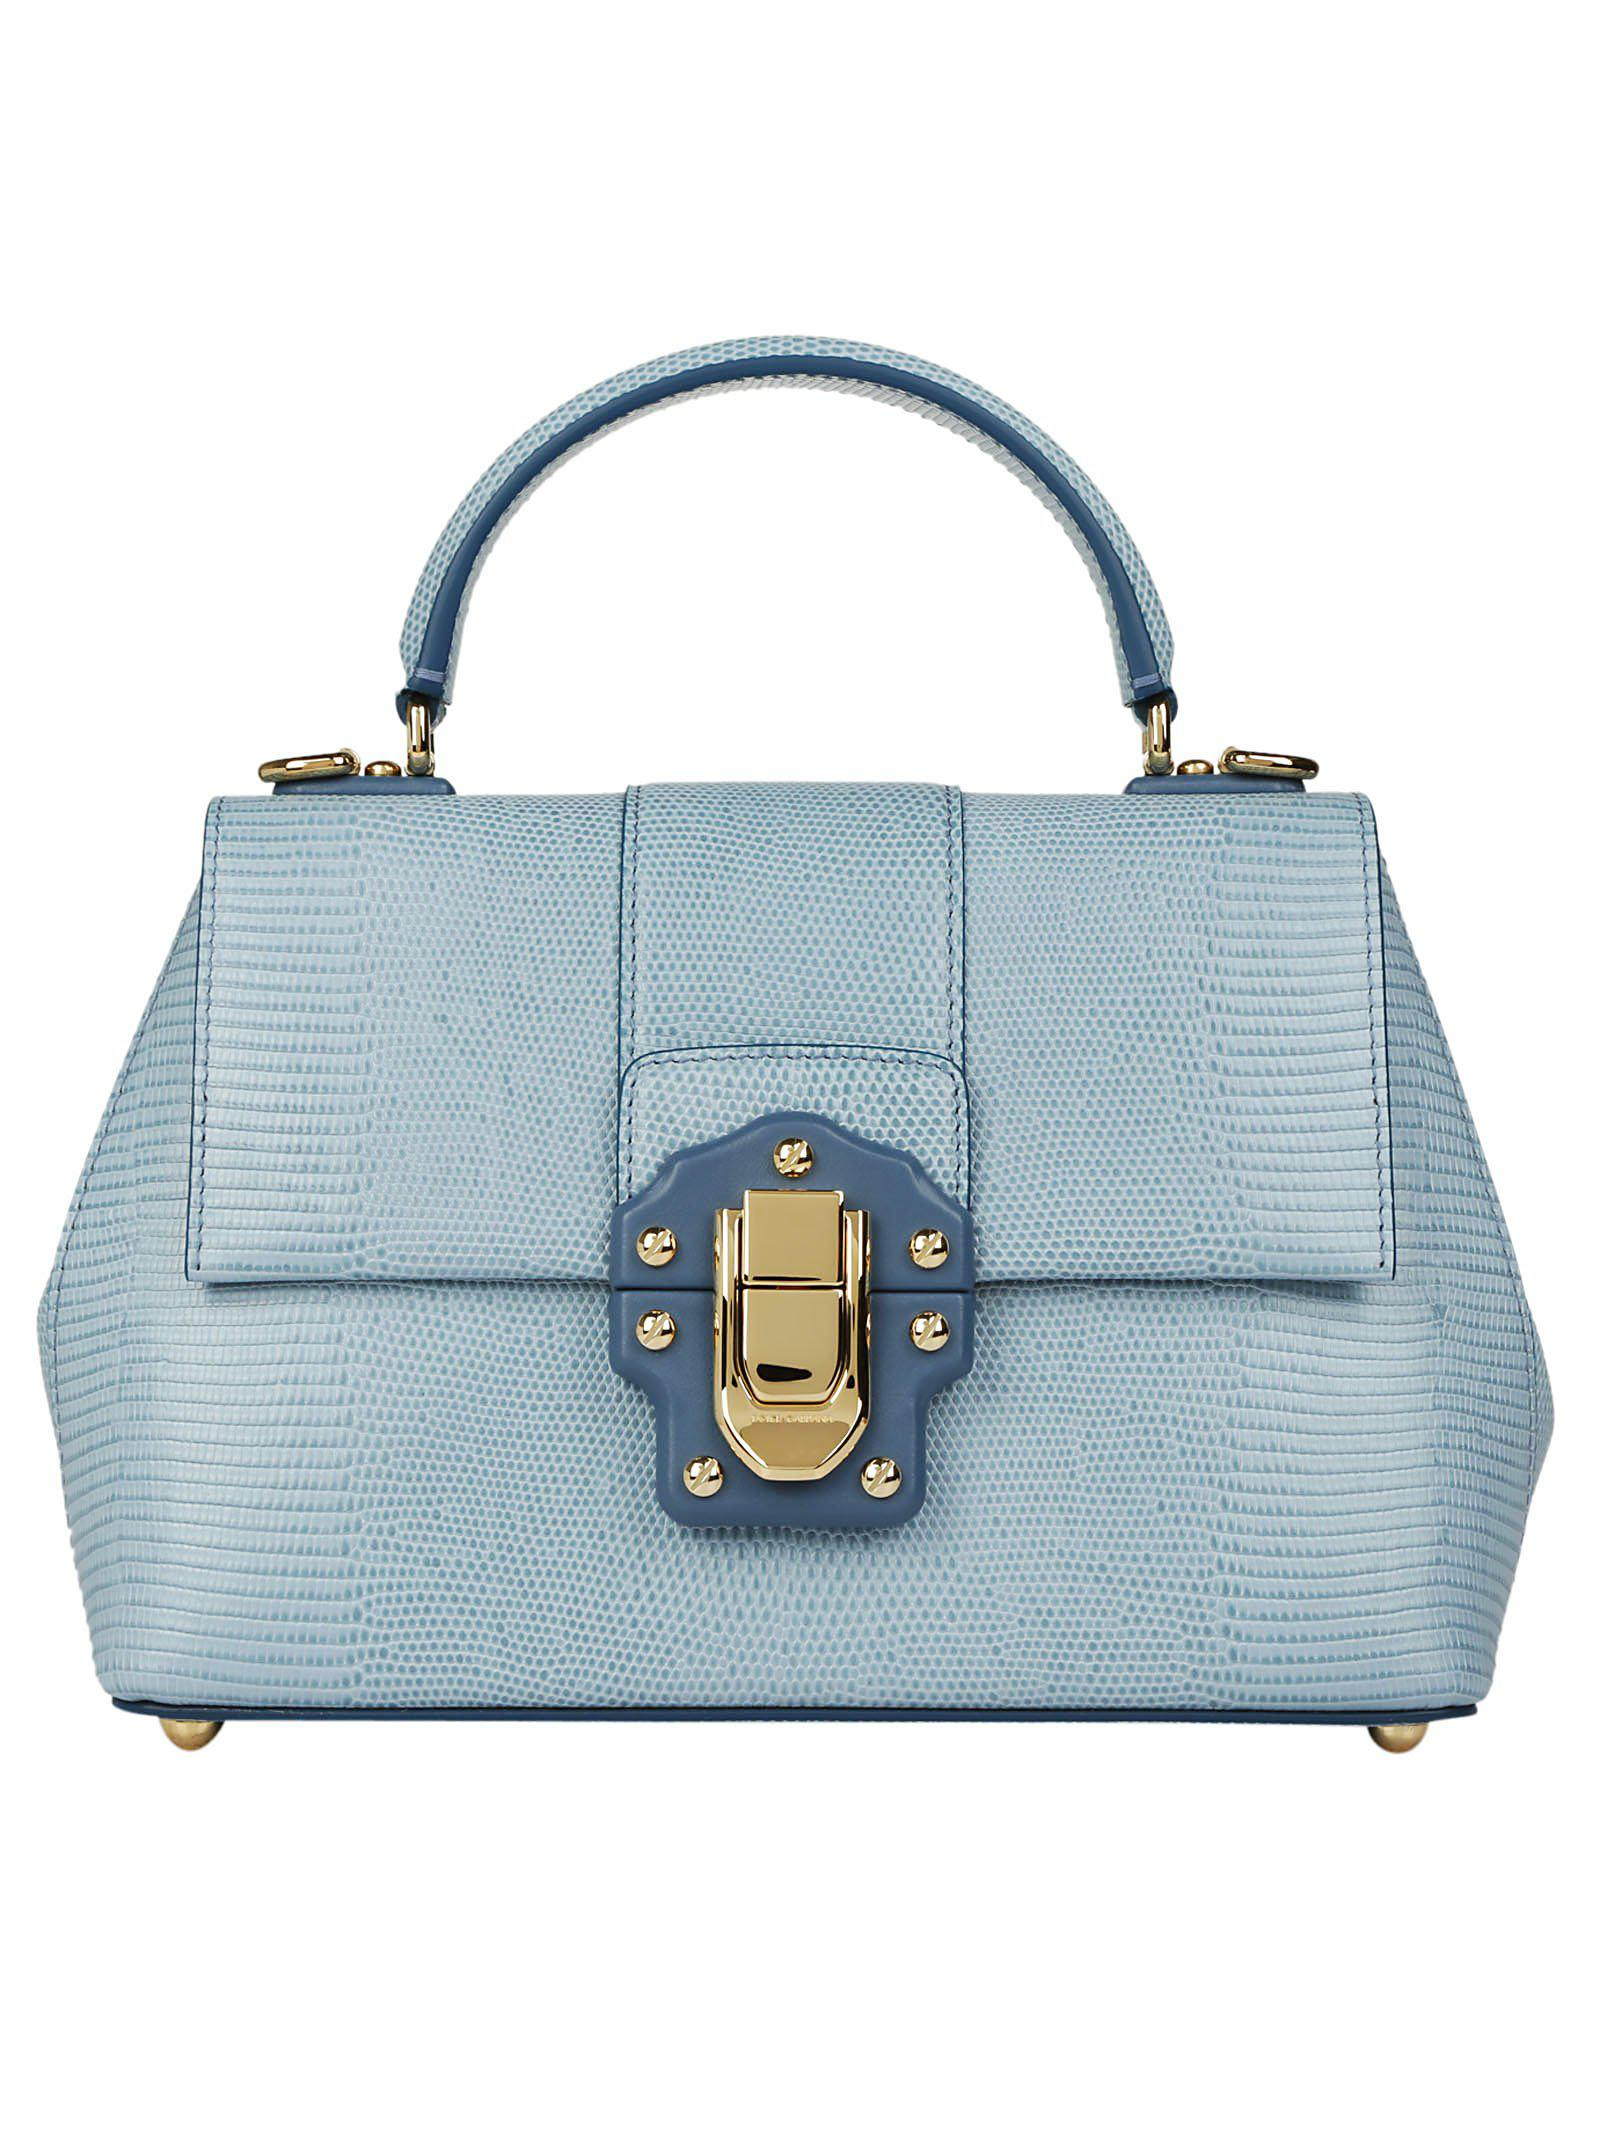 1767ed700a36 Dolce   Gabbana Lucia Snake Effect Tote Bag in Blue - Lyst